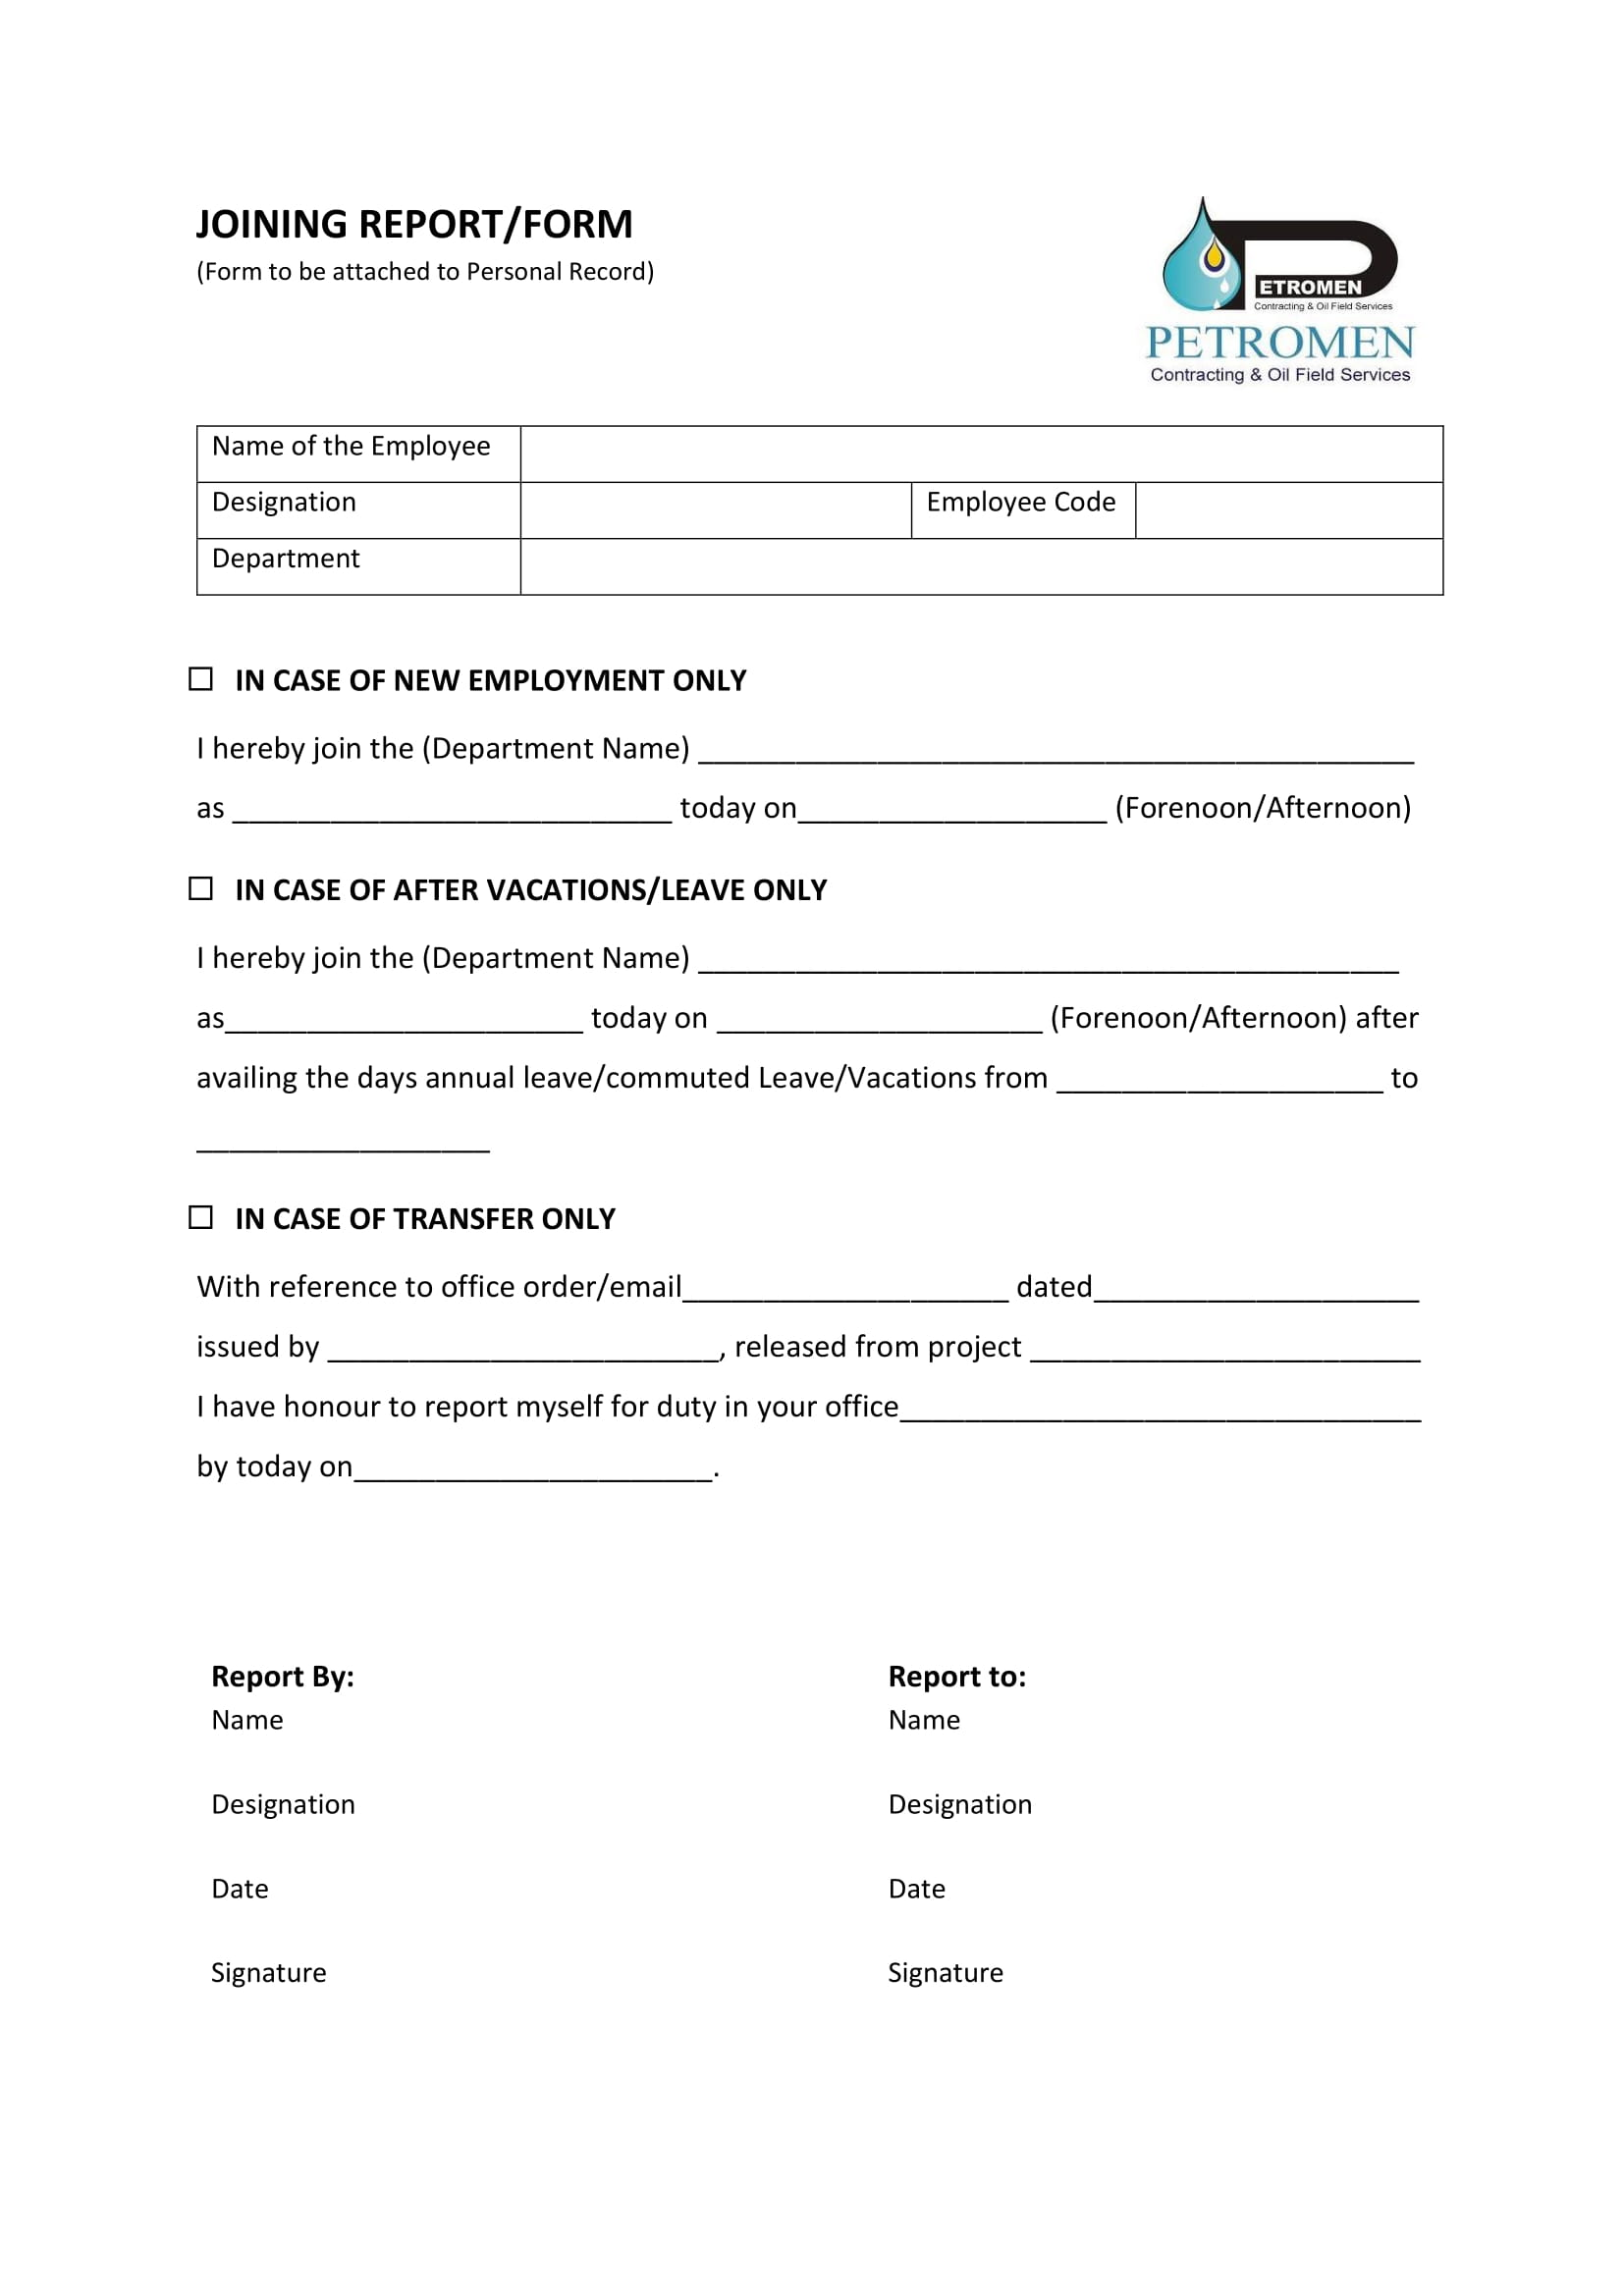 14 Joining Report Forms Pdf Doc